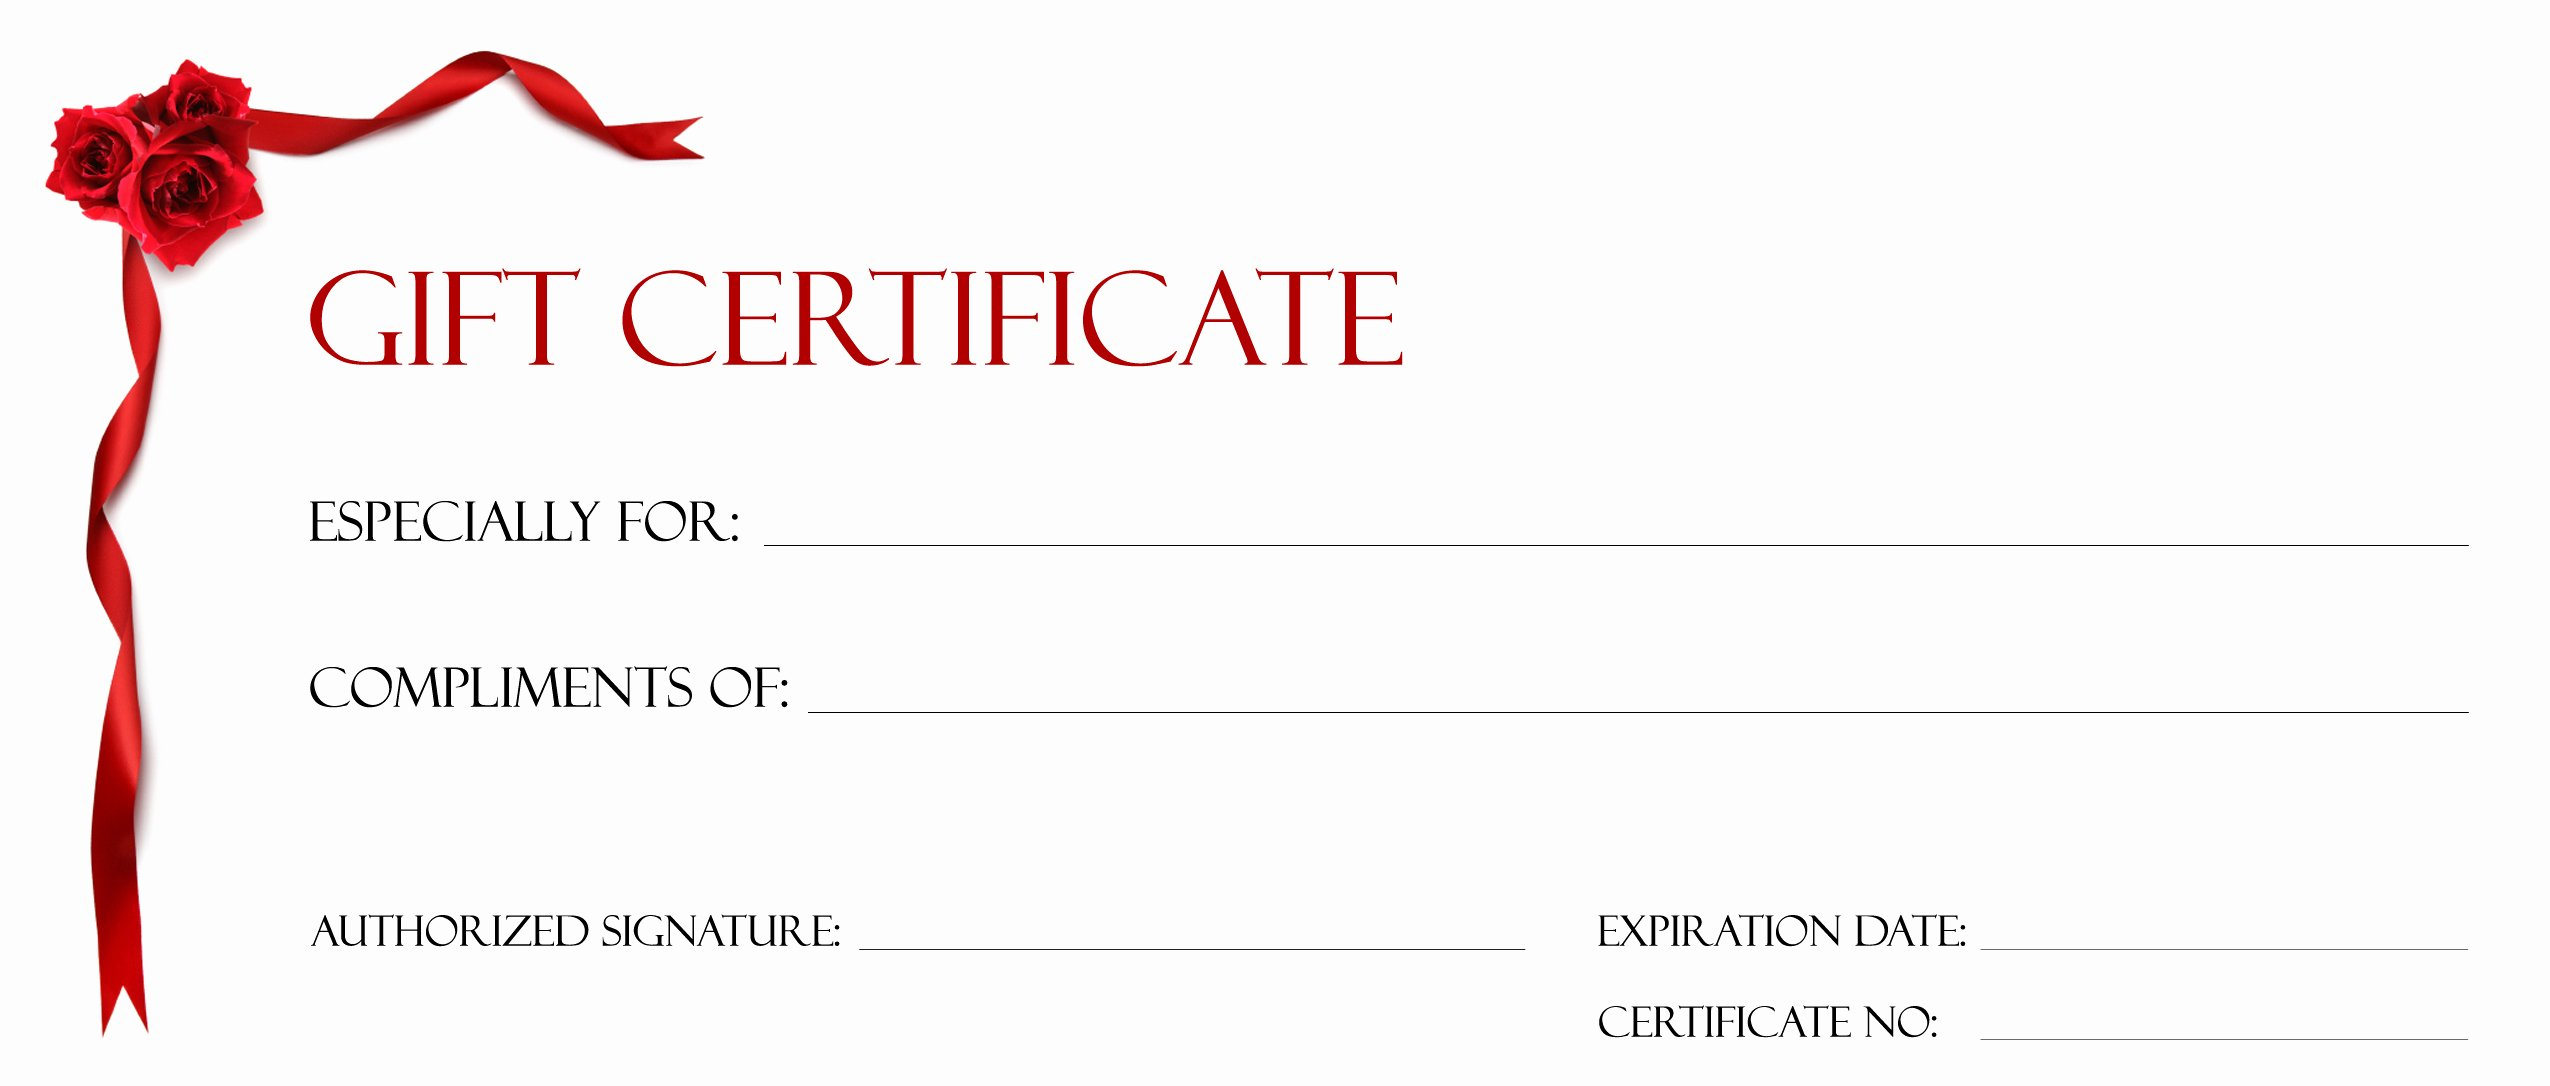 How to Make A Certificate New Gift Certificate Make Your Own